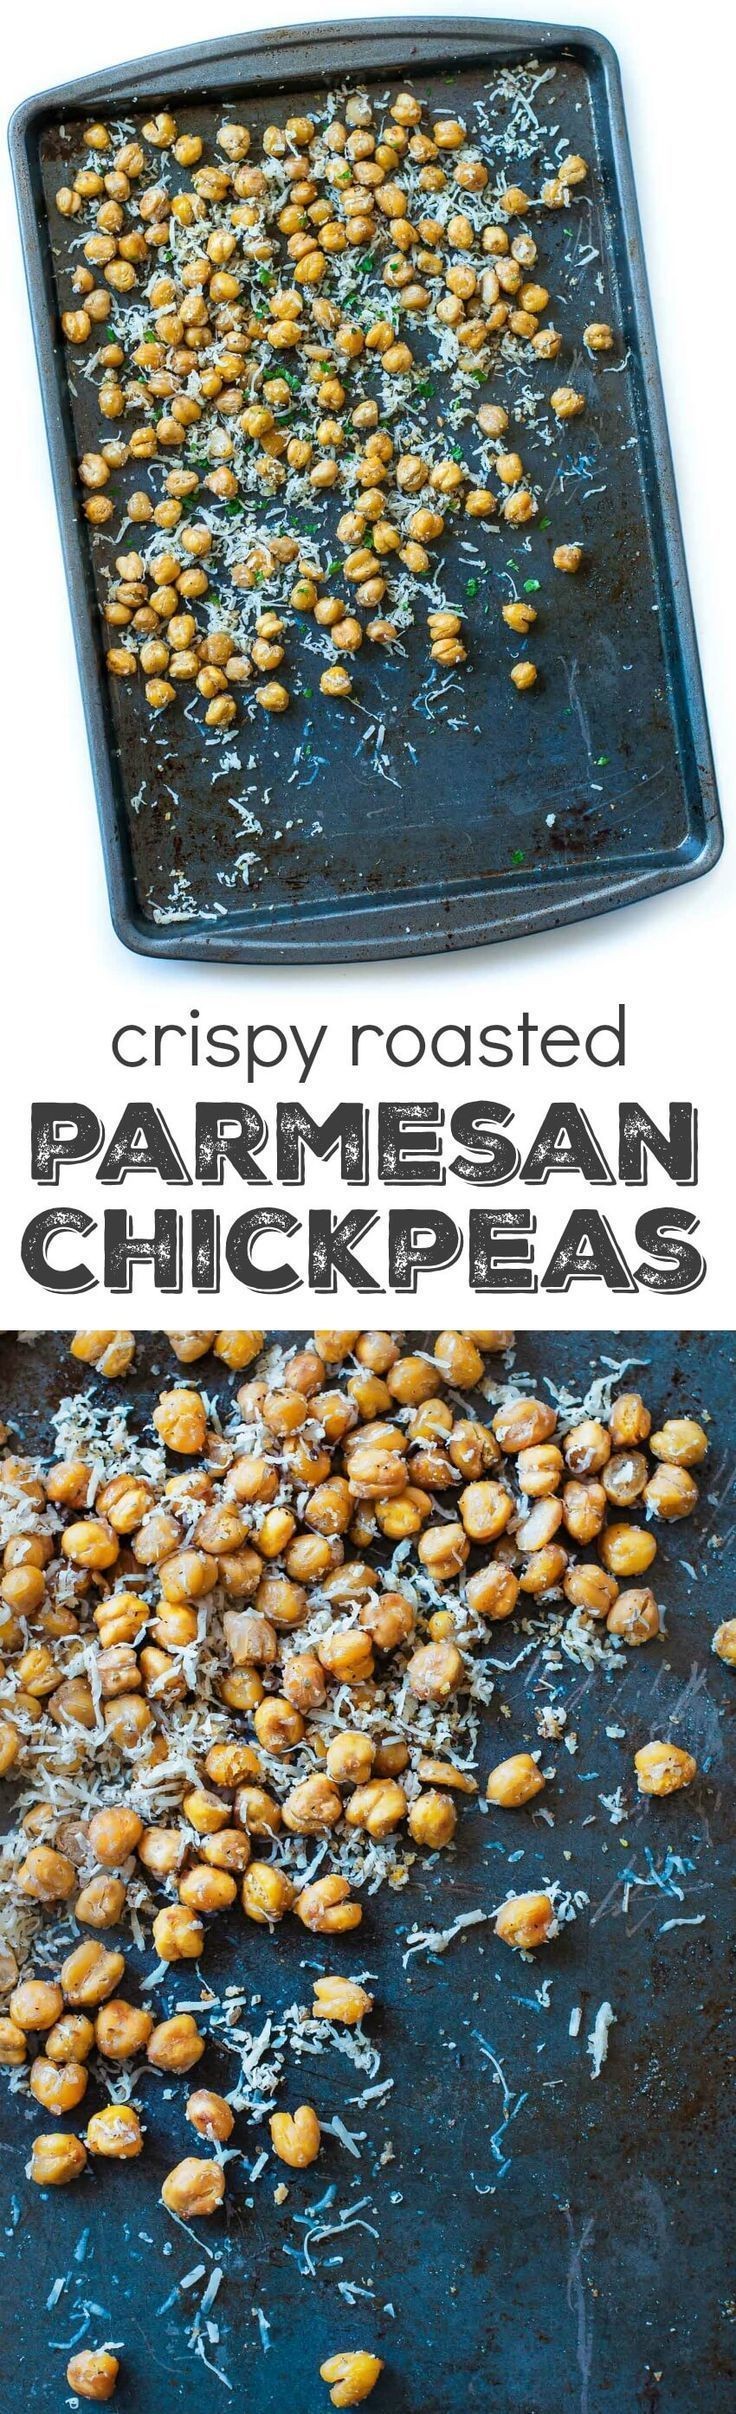 These crispy roasted parmesan chickpeas are a healthy snack loaded with protein, fiber, and a whole lot of deliciousness! Vegetarian + GF